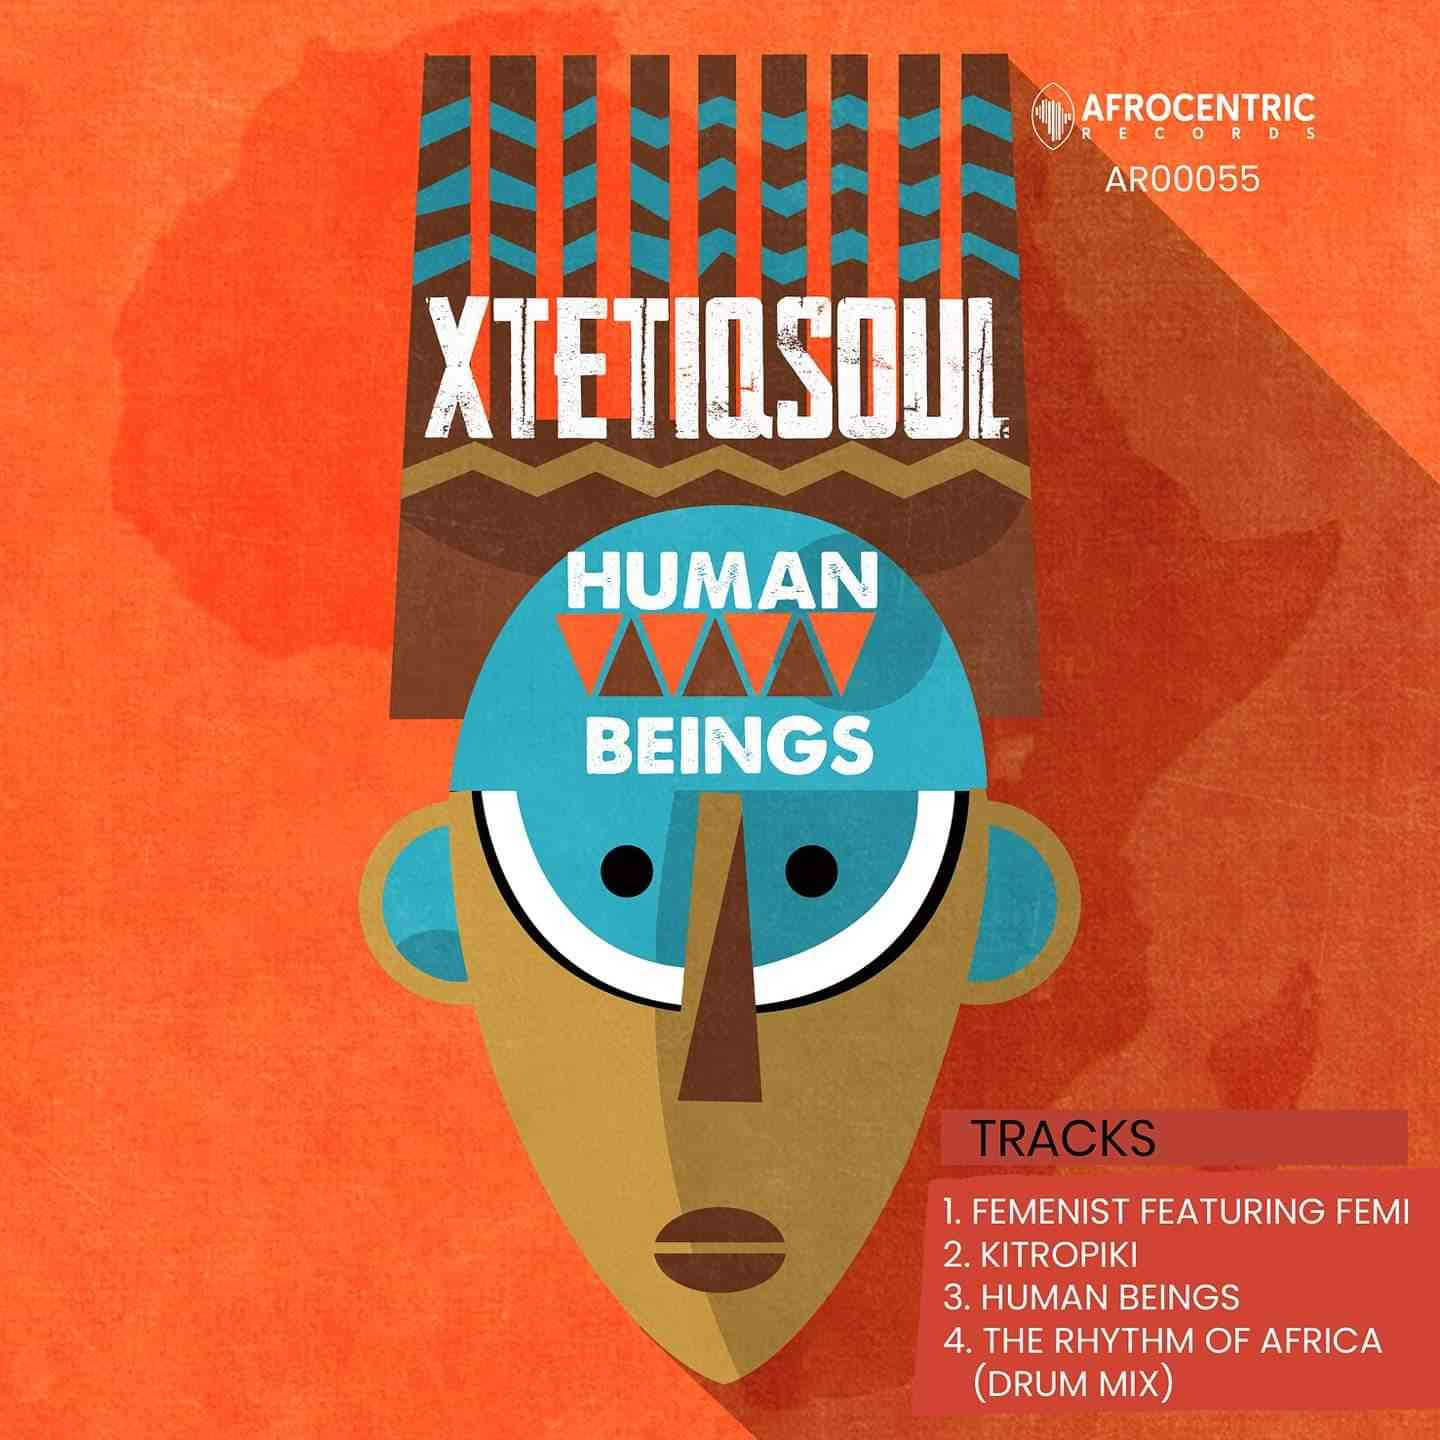 Xtetiqsoul Set The Floor Open With Human Beings EP